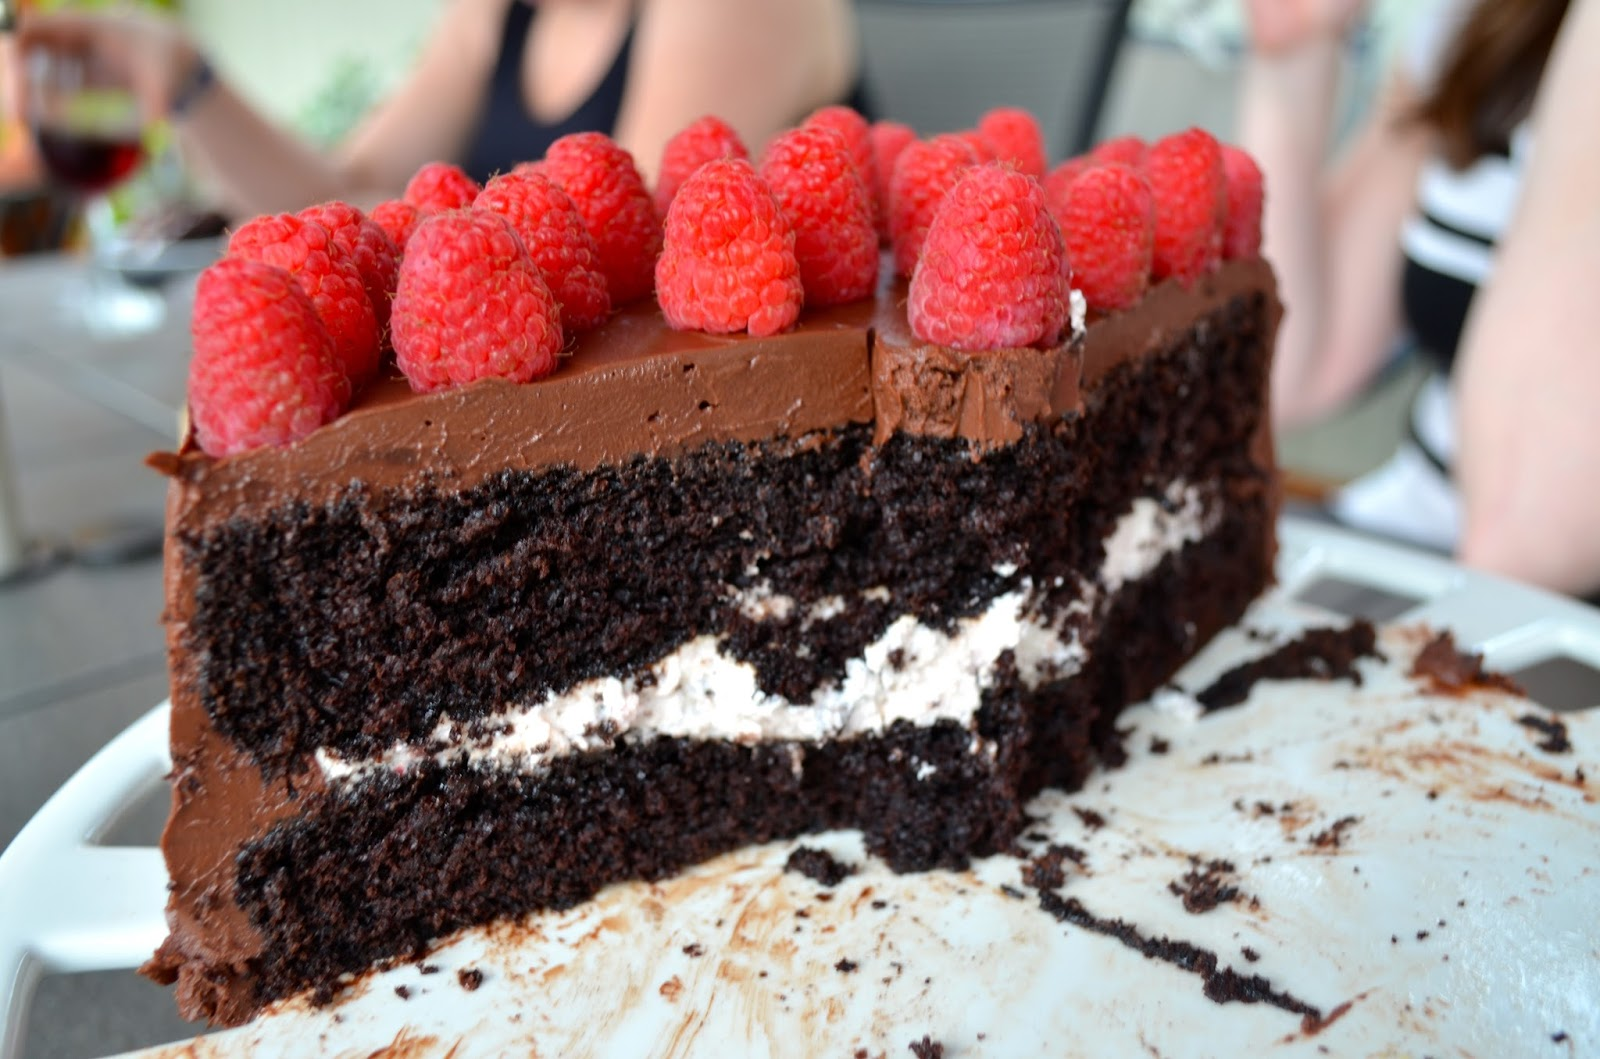 Dark chocolate raspberry cake detail